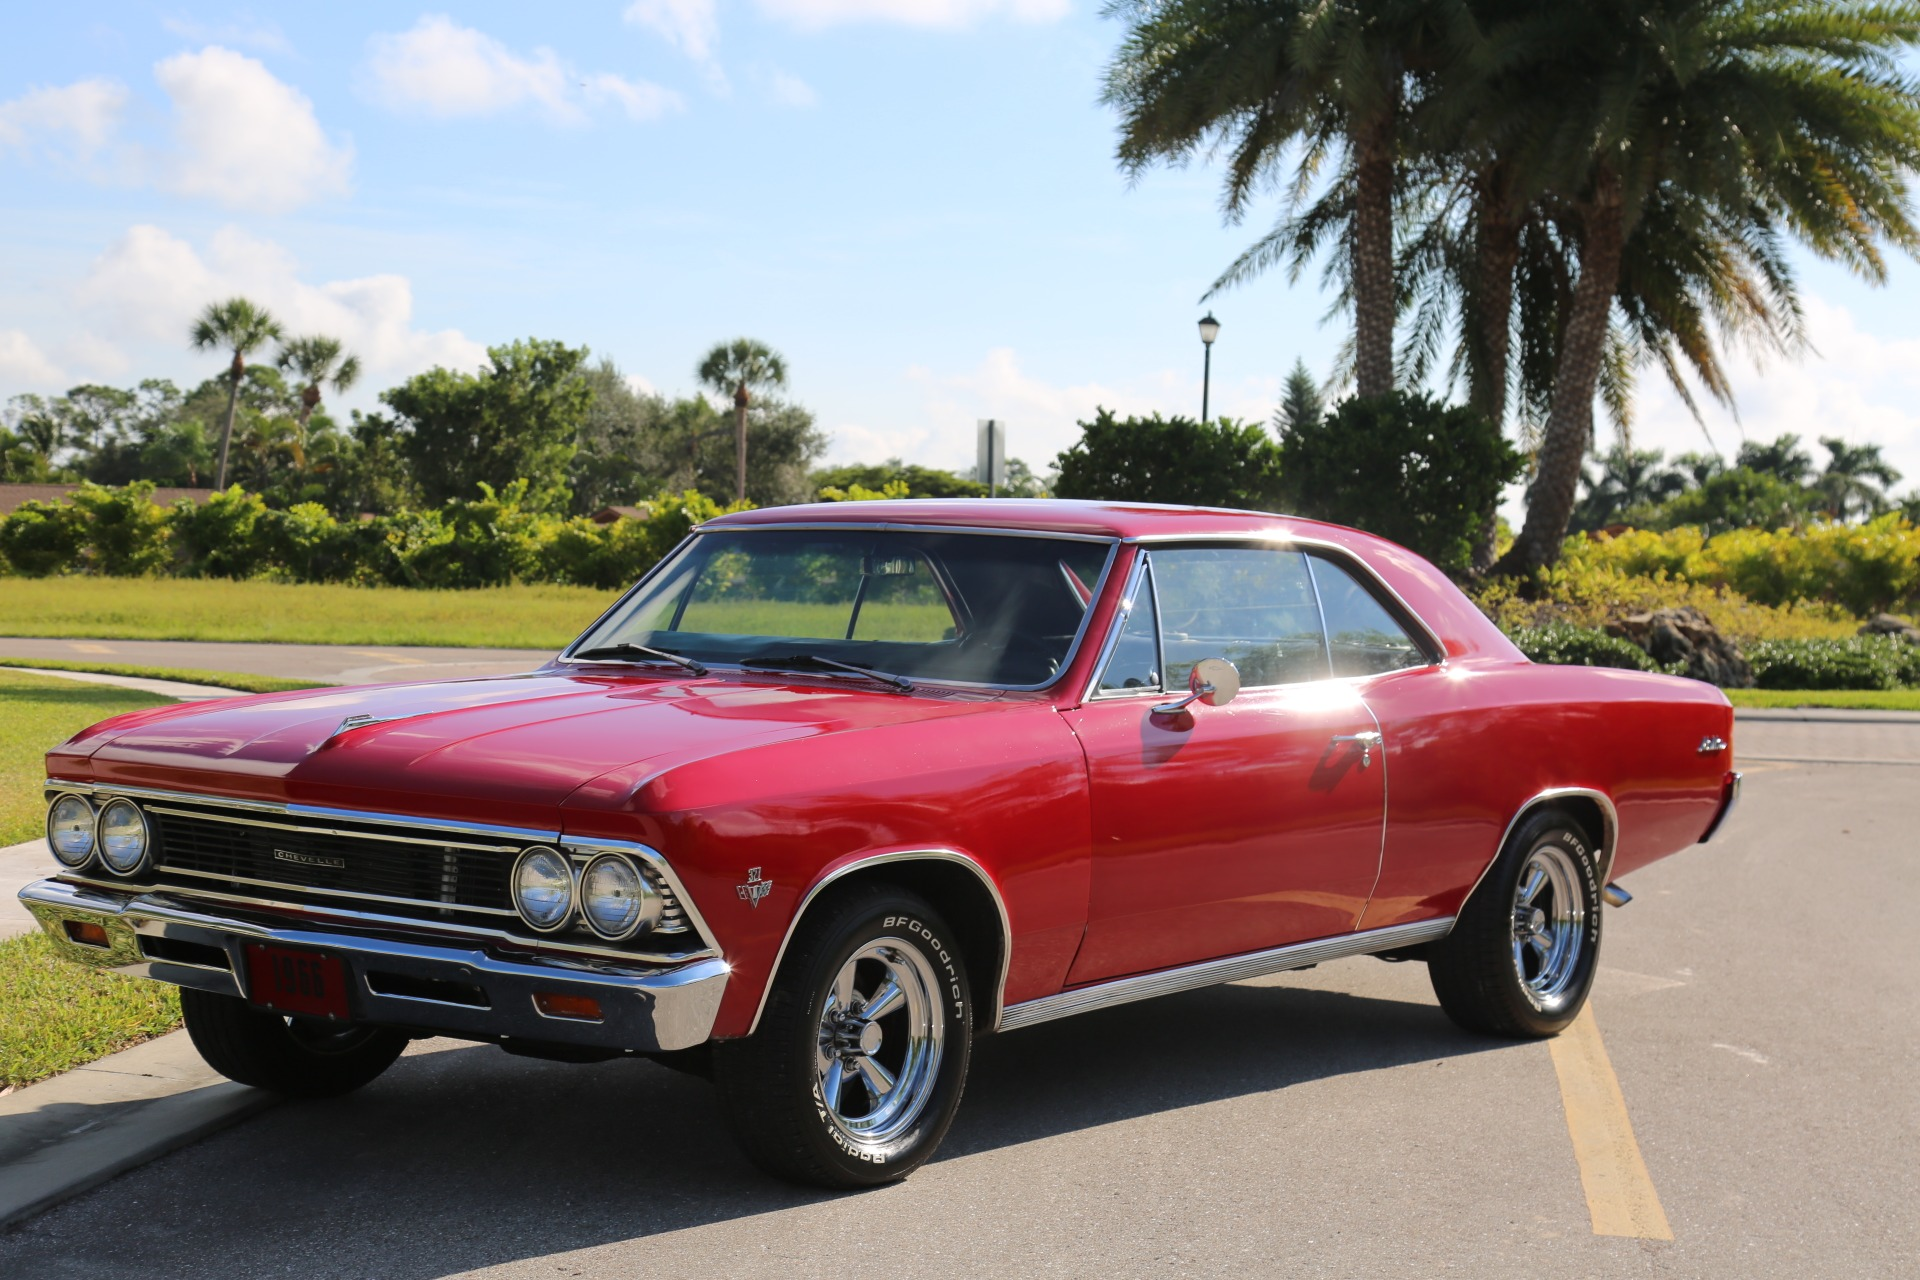 Used 1966 Chevrolet Chevelle Malibu 327 for sale Sold at Muscle Cars for Sale Inc. in Fort Myers FL 33912 2